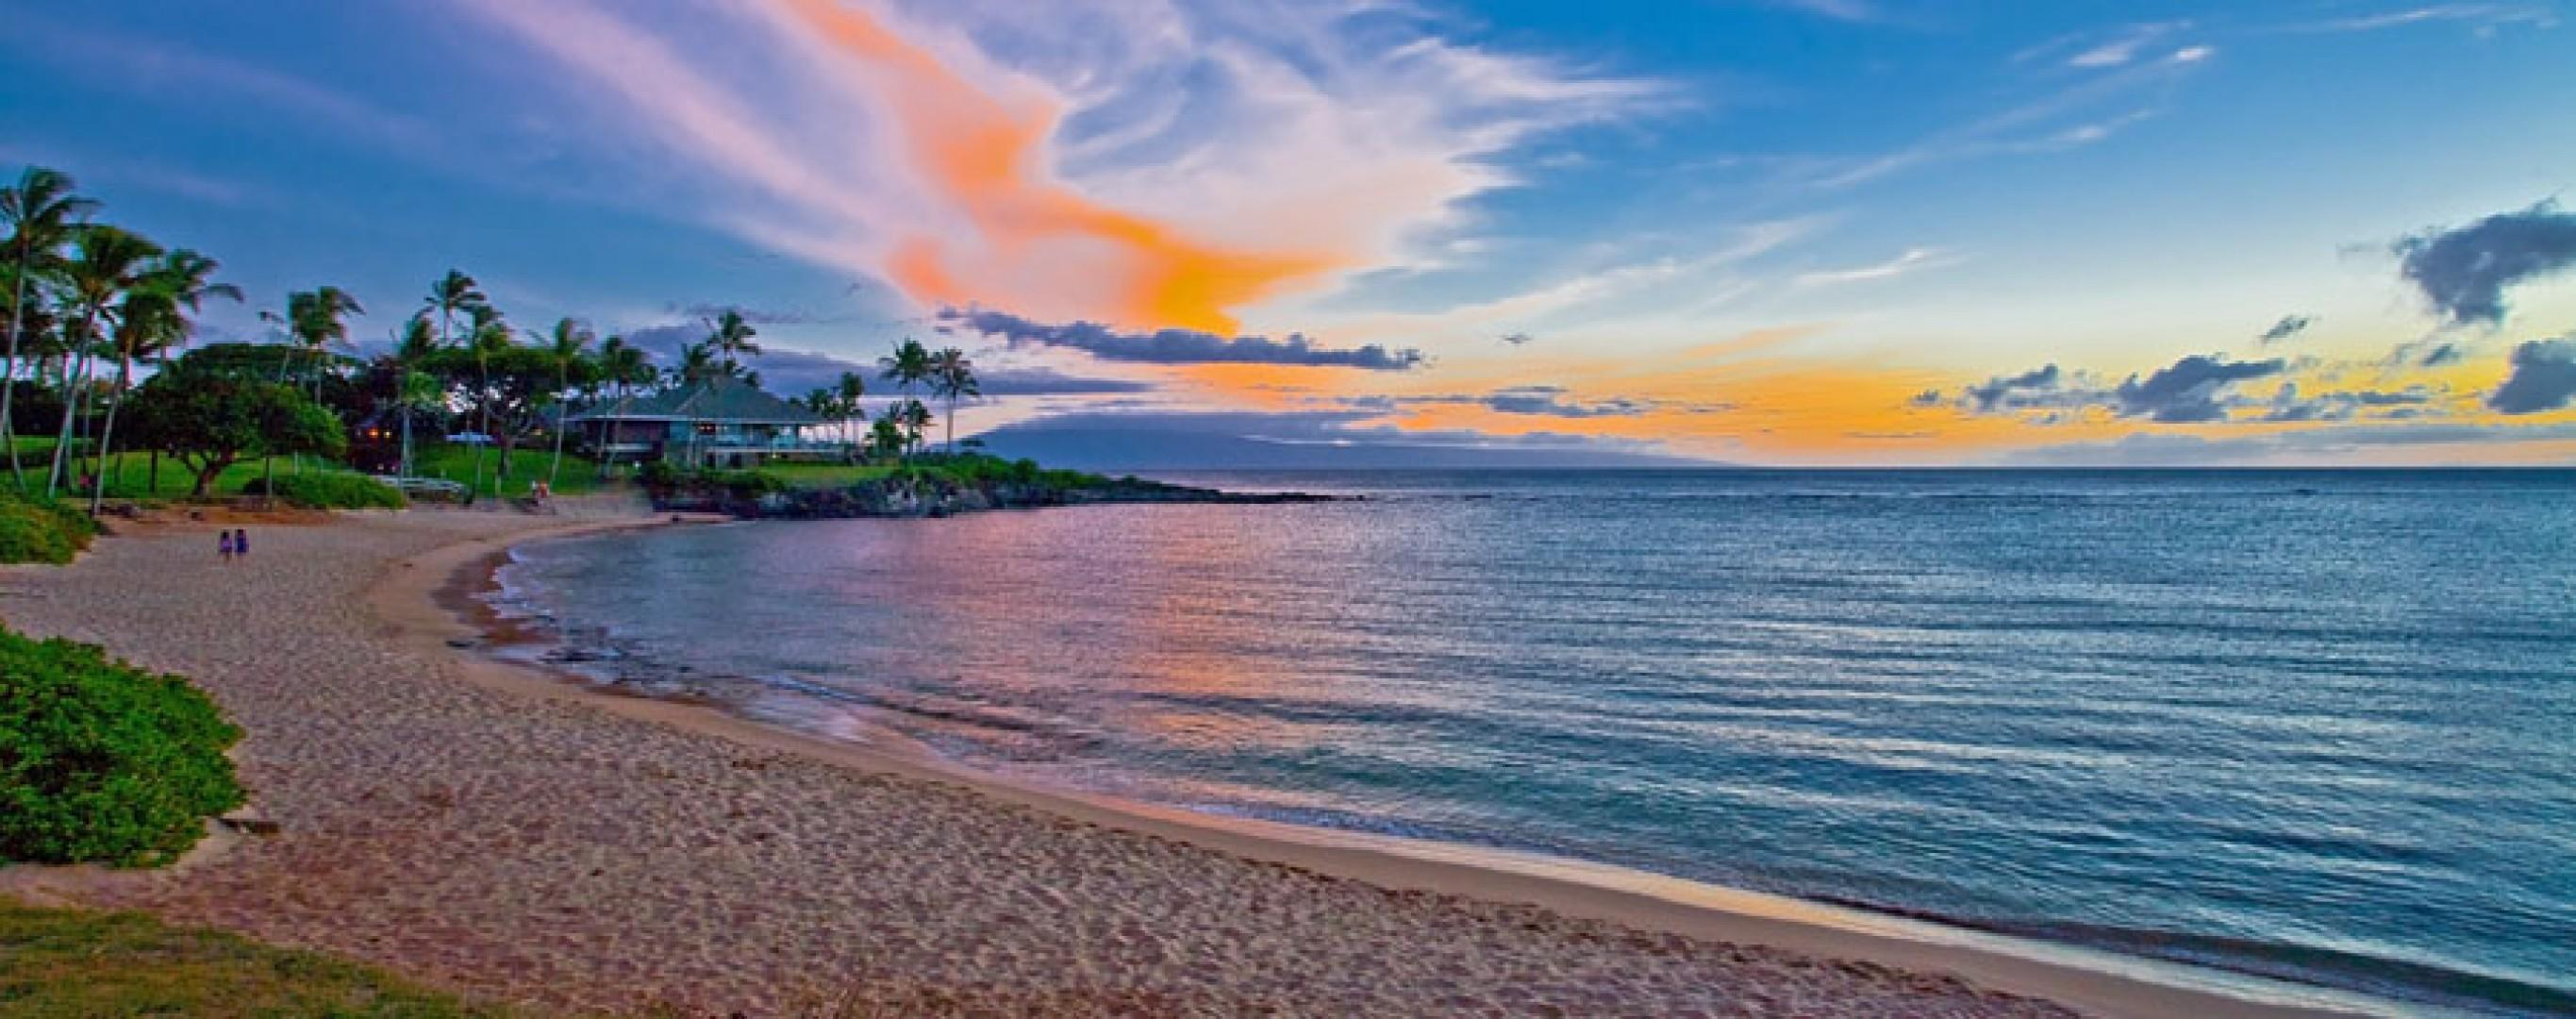 Amazing Sunsets Over Nearby Merriman`s Restaurant and Kapalua Bay